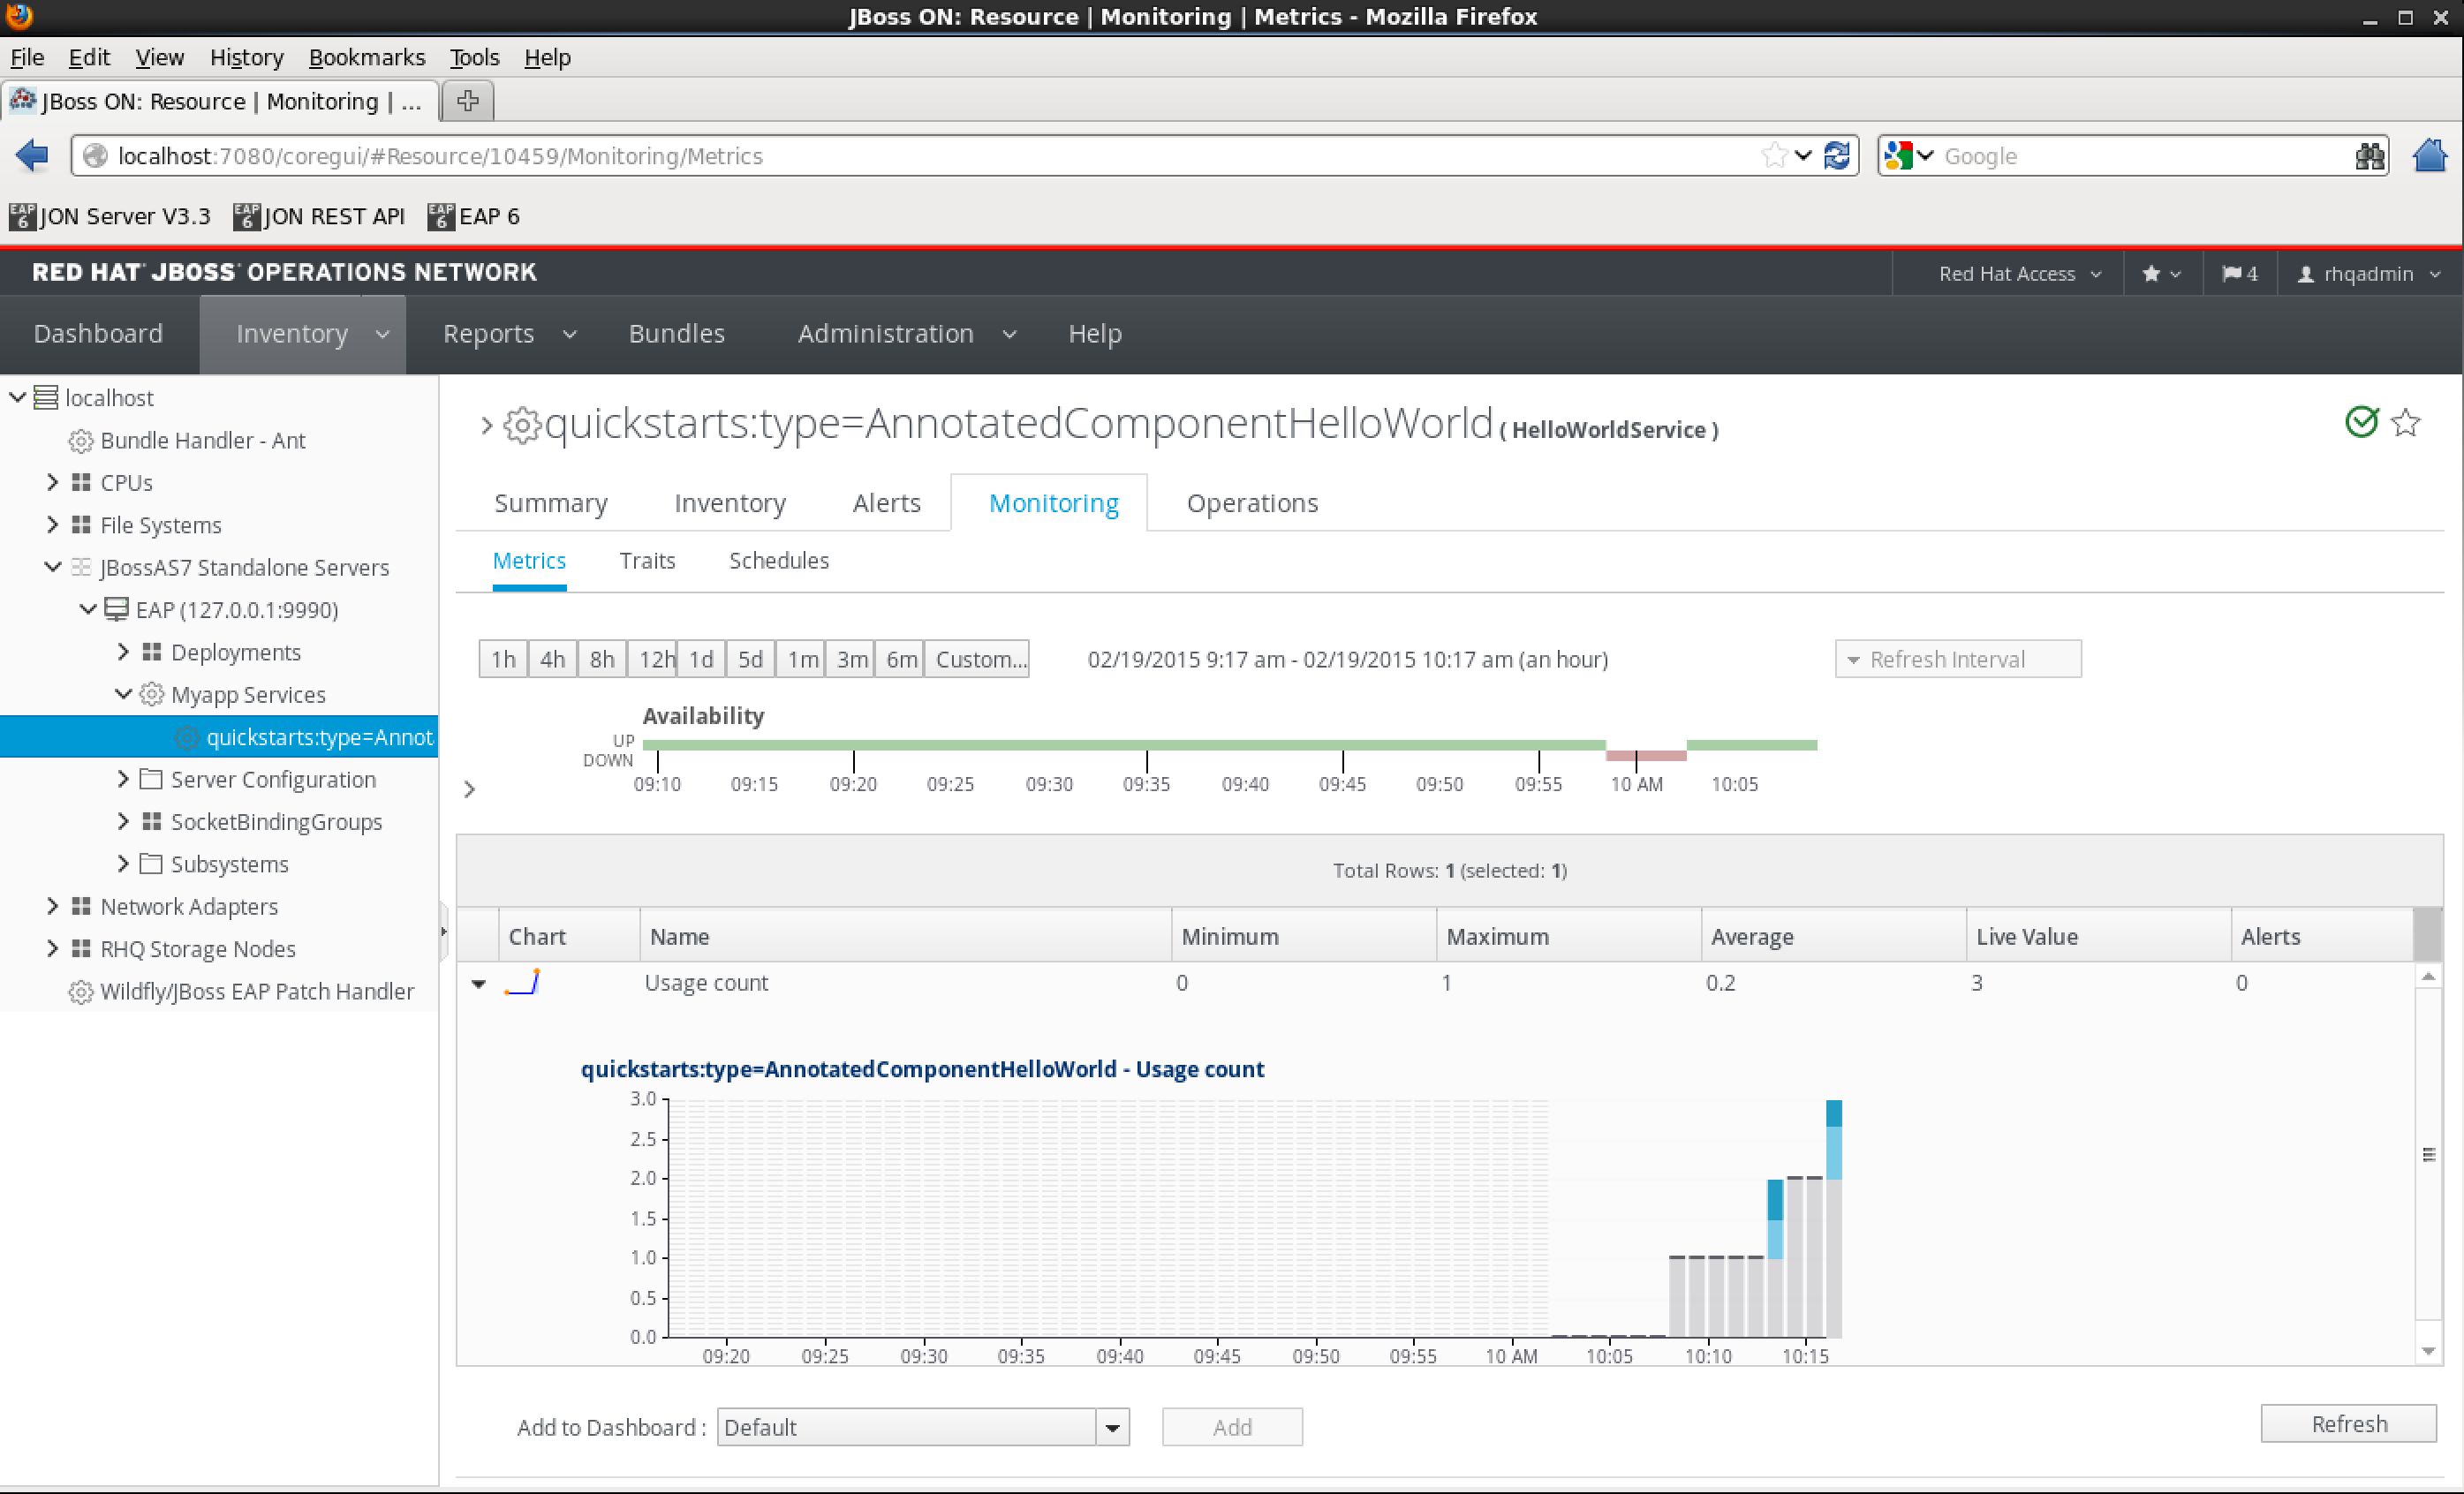 4. Monitoring of custom MBean metrics